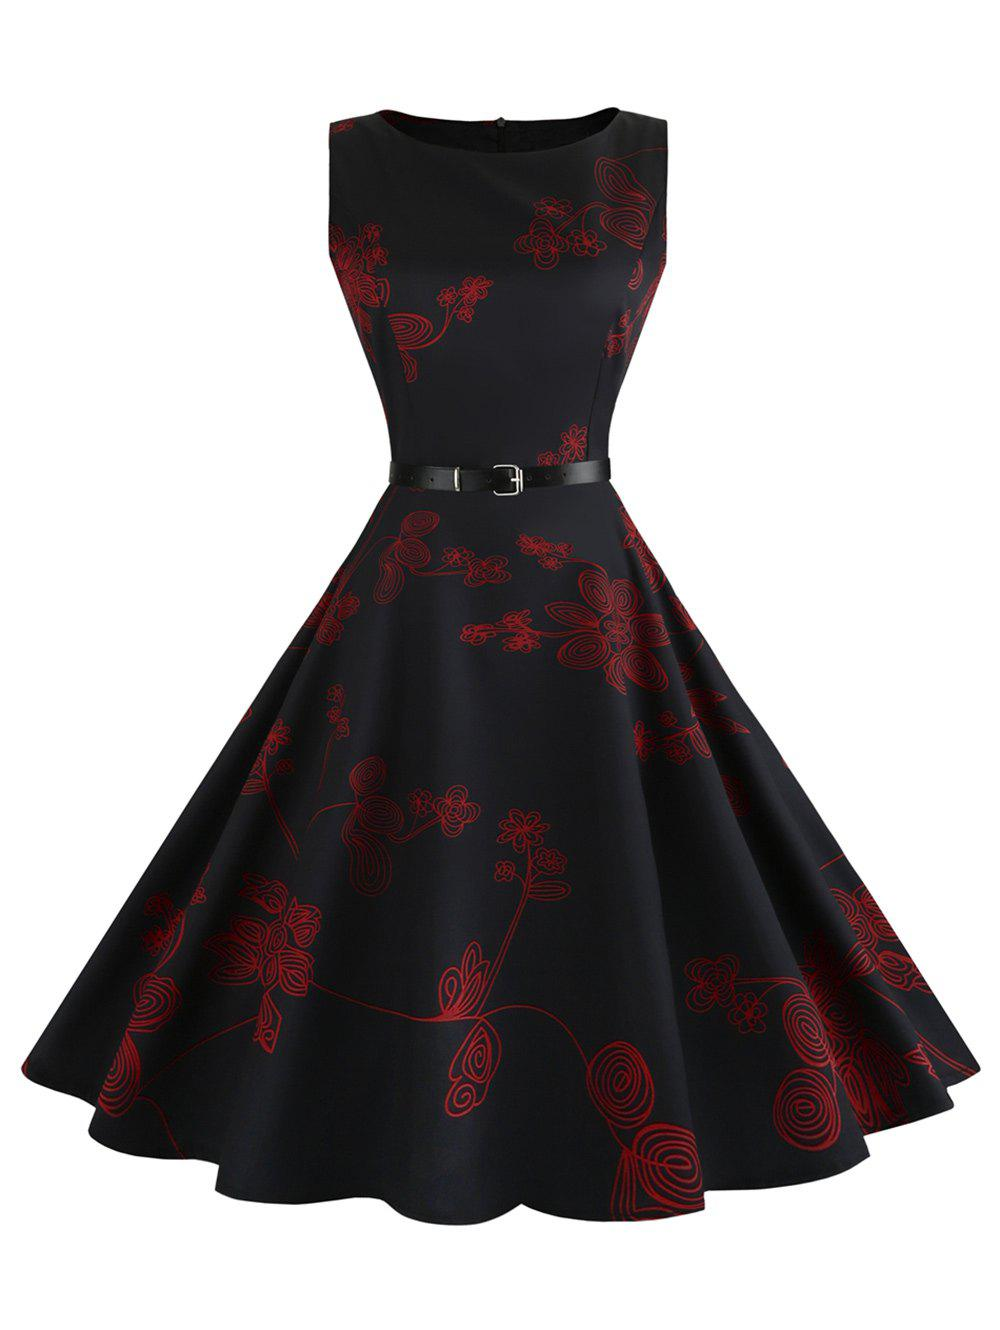 Floral Sleeveless Vintage Fit and Flare DressWOMEN<br><br>Size: S; Color: RED; Style: Vintage; Material: Cotton,Polyester; Silhouette: A-Line; Dress Type: Fit and Flare Dress,Swing Dress; Dresses Length: Mid-Calf; Neckline: Round Collar; Sleeve Length: Sleeveless; Pattern Type: Floral; With Belt: Yes; Season: Summer; Weight: 0.2500kg; Package Contents: 1 x Dress 1 x Belt;